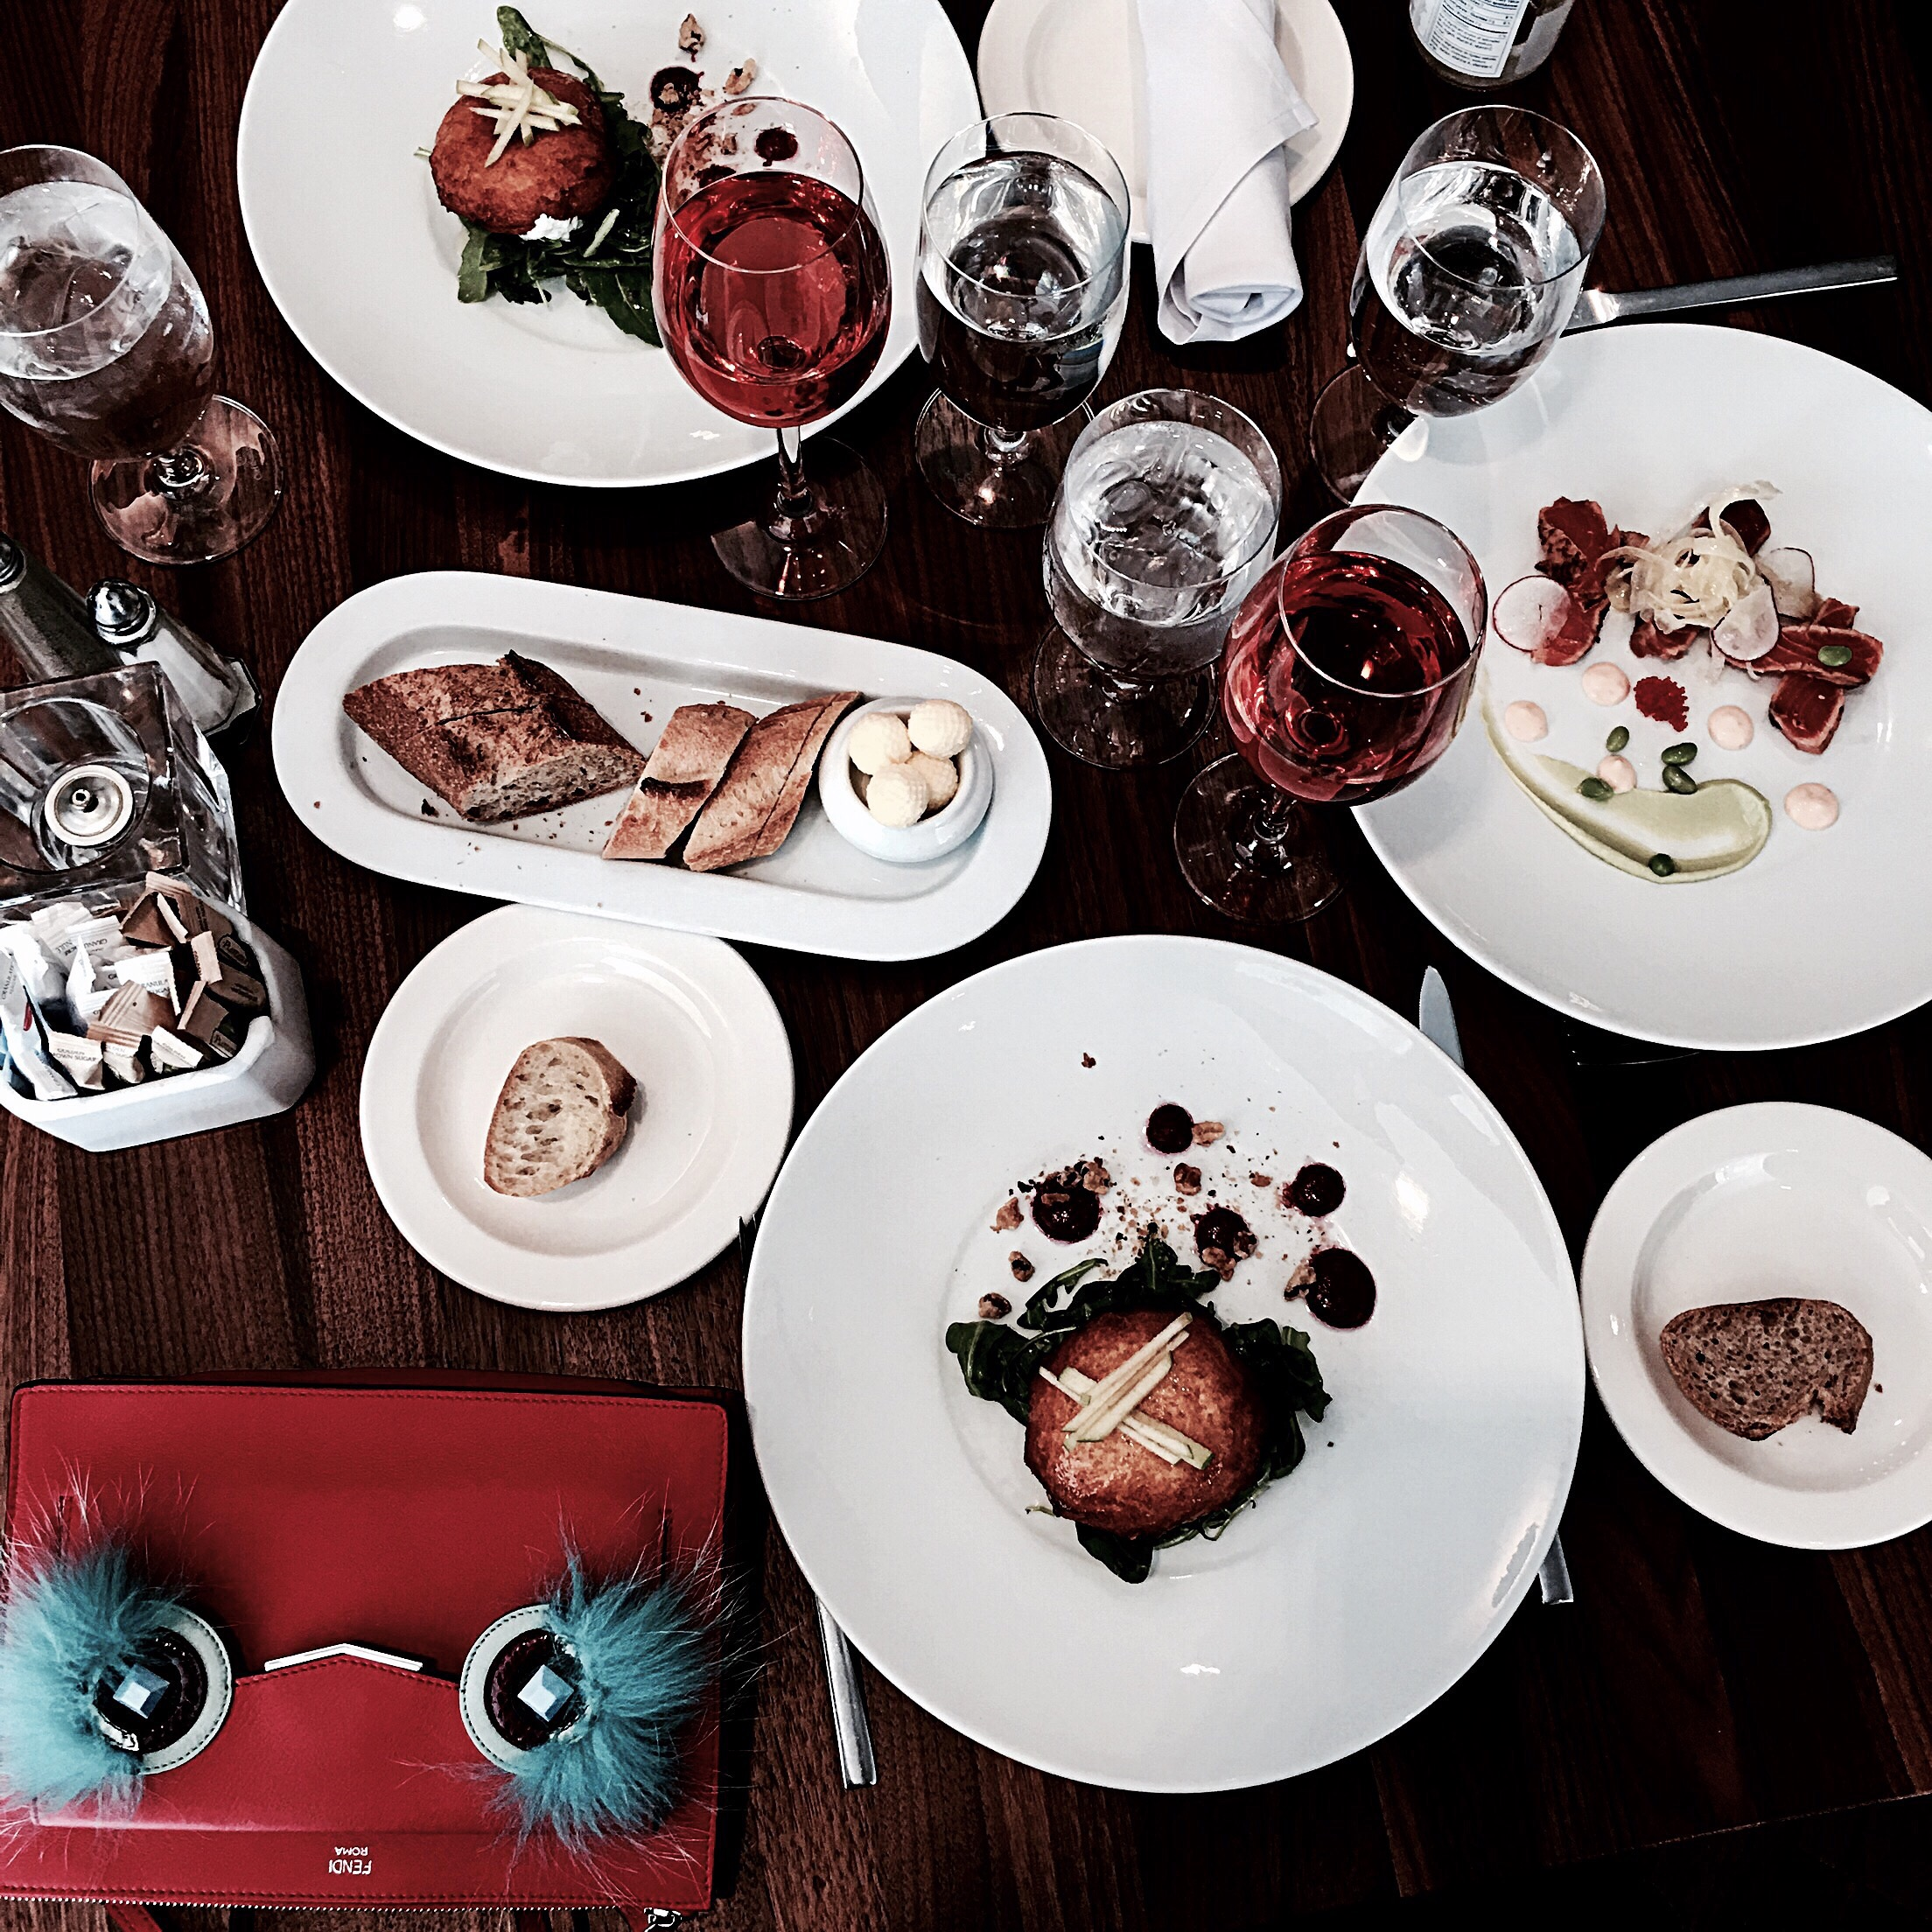 Sunday brunch at le Kube: tried & true